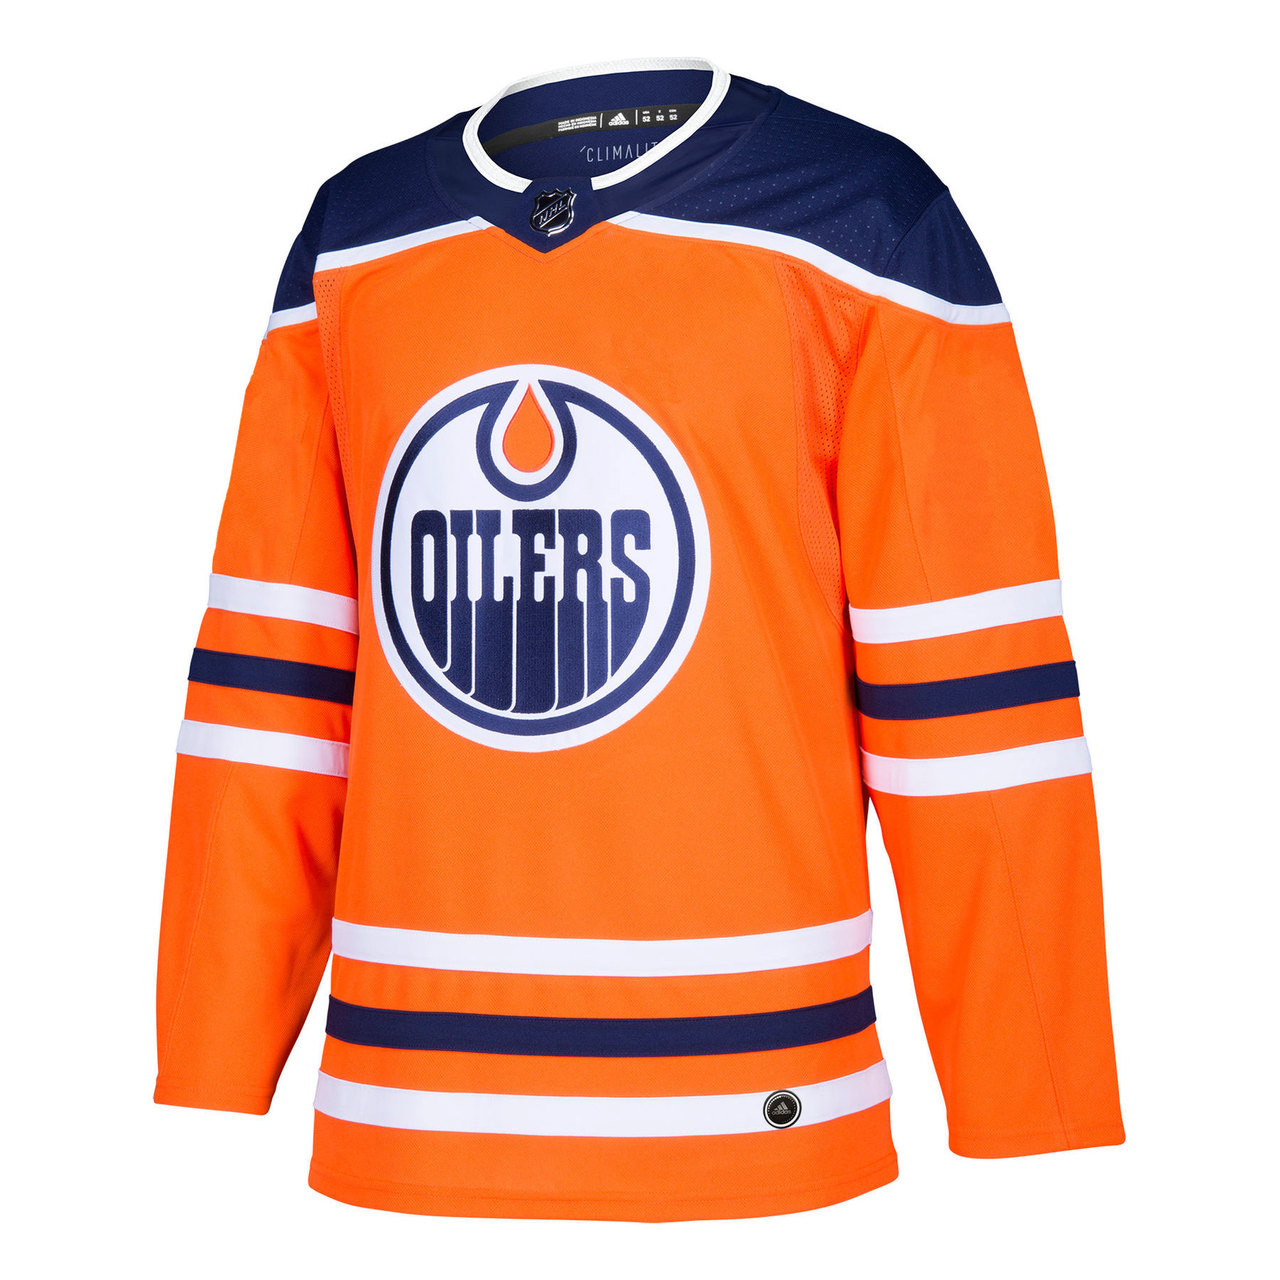 17dac0060c0 Edmonton Oilers adidas adizero NHL Authentic Pro Home Jersey - Hollywood  Filane